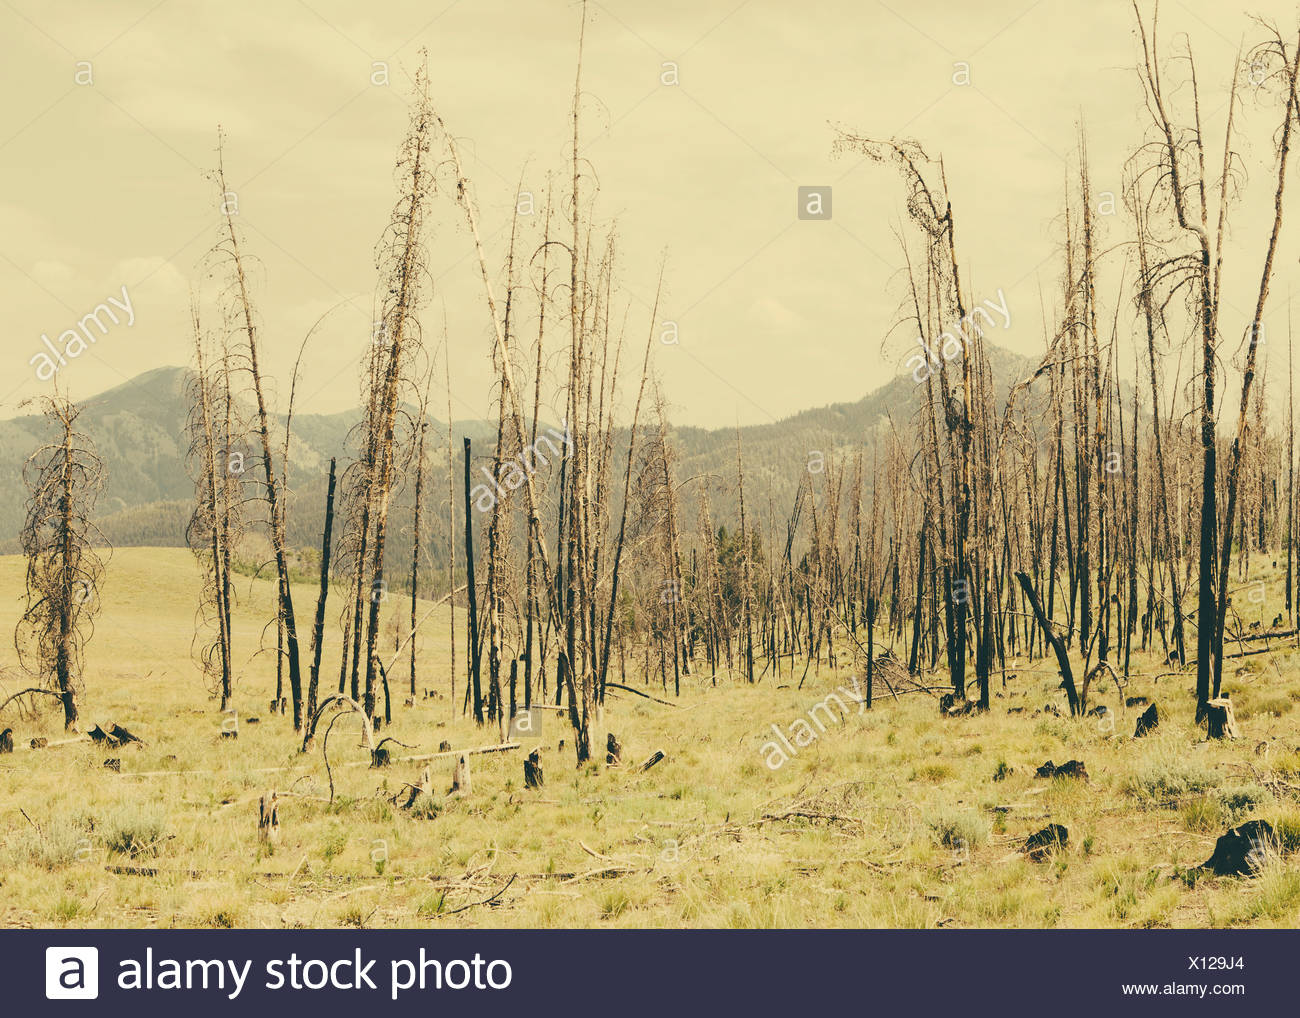 Fire damaged trees and forest in Payette National Forest in Valley County, Indiana. - Stock Image